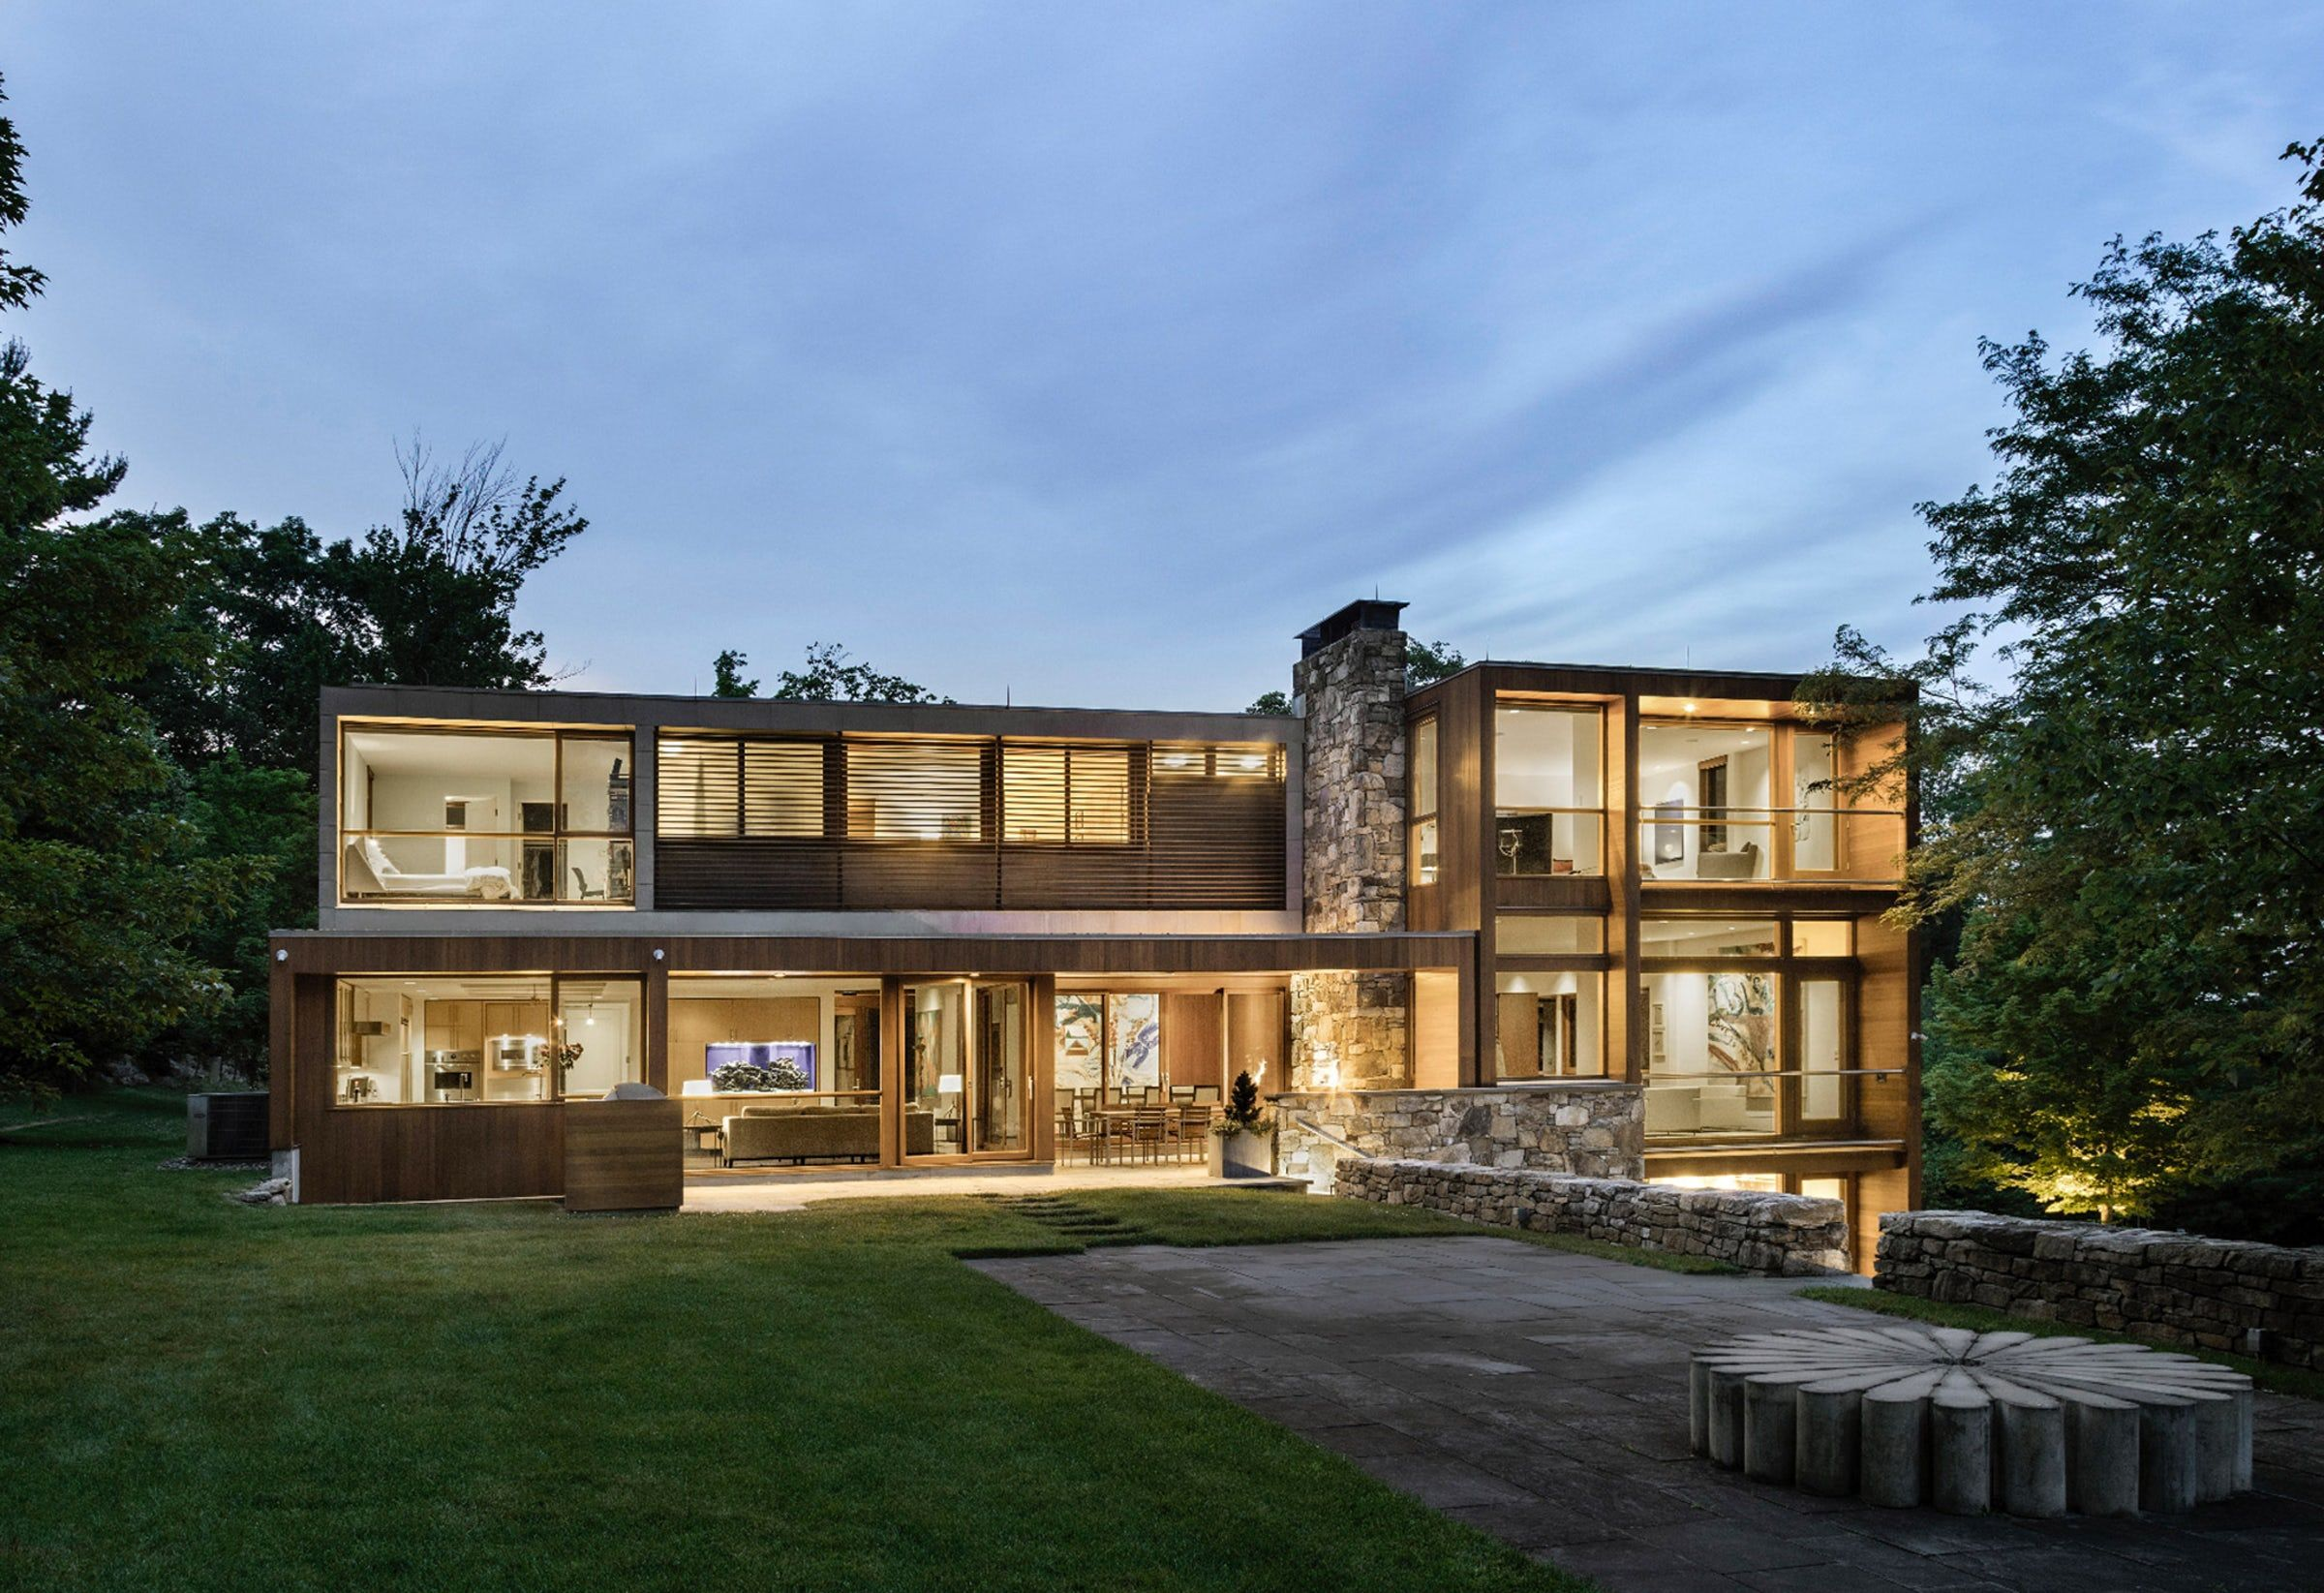 architecture for houses blogs workanyware co uk u2022 rh blogs workanyware co uk